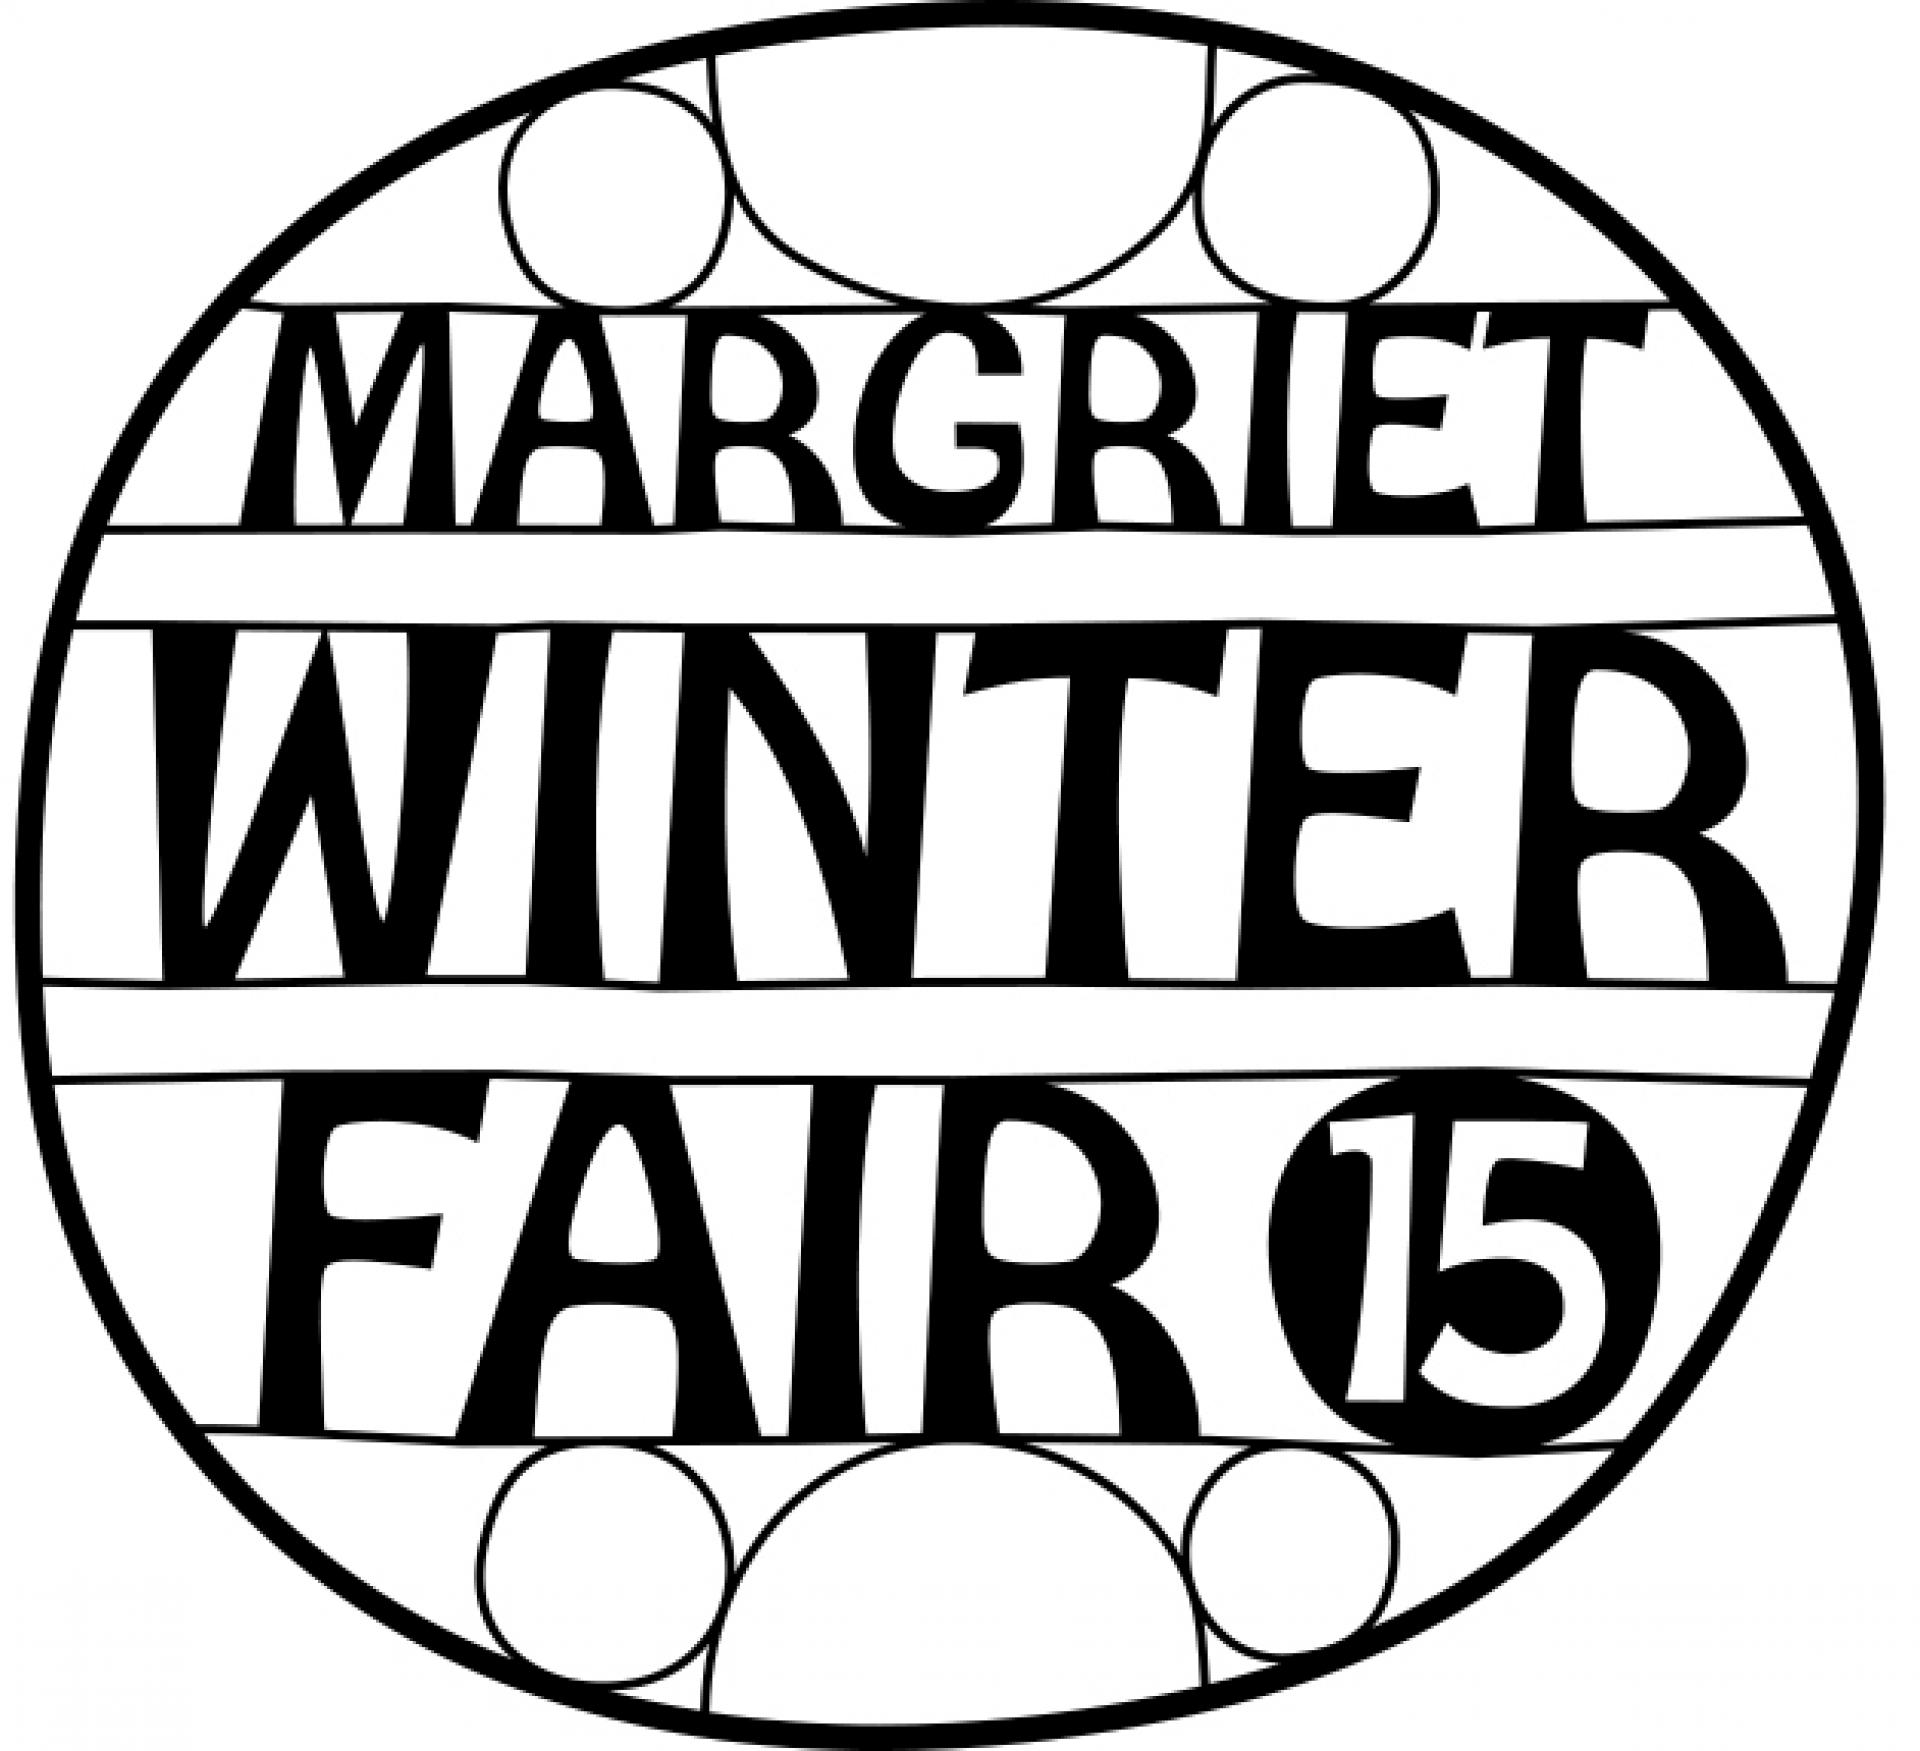 Archeon op de Margriet Winter Fair